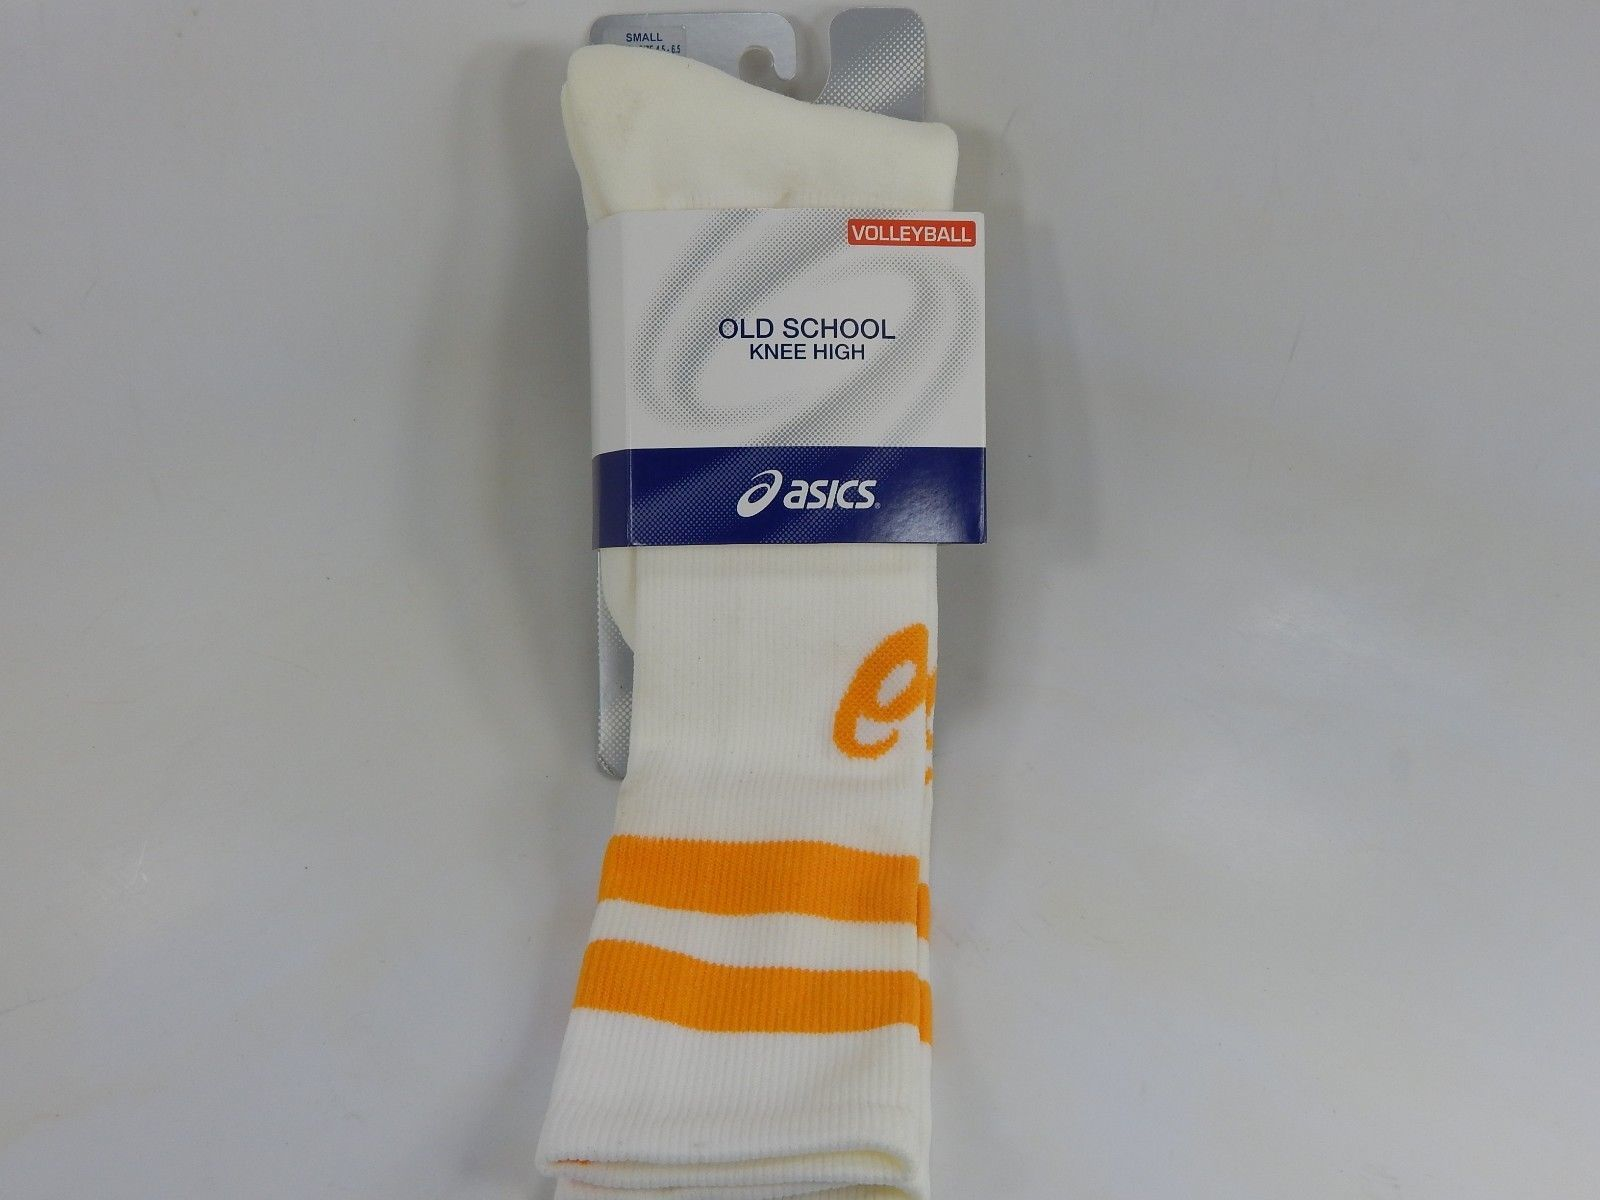 Asics Old School Knee High Volleyball Socks White/Gold S Small Womens Size 6-7.5